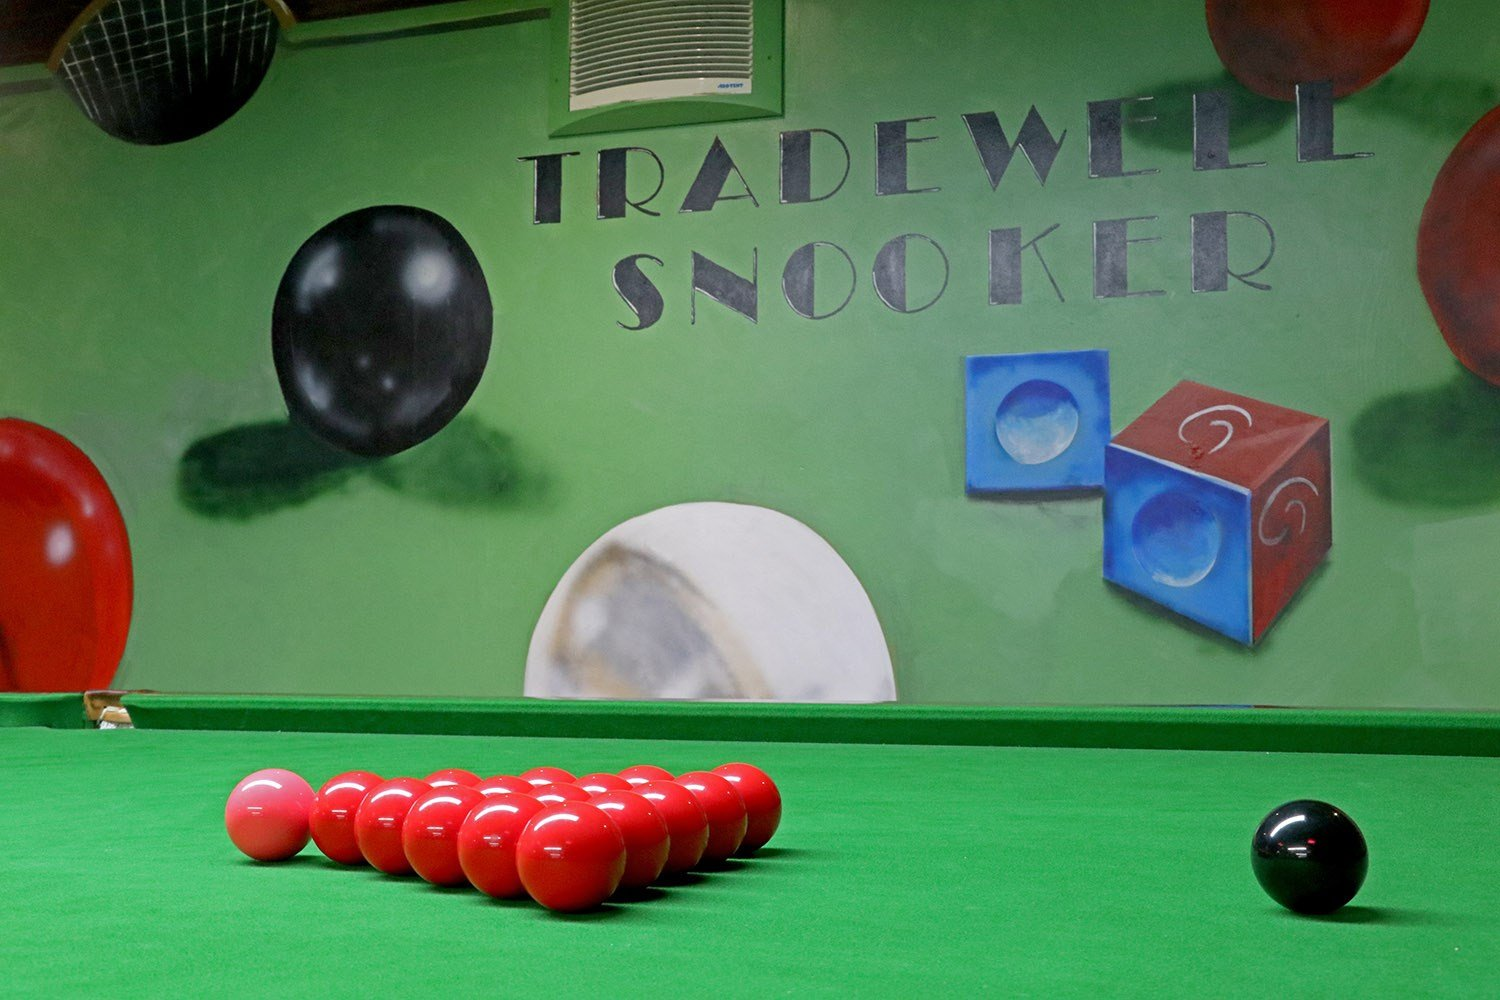 Tradewell Snooker Club